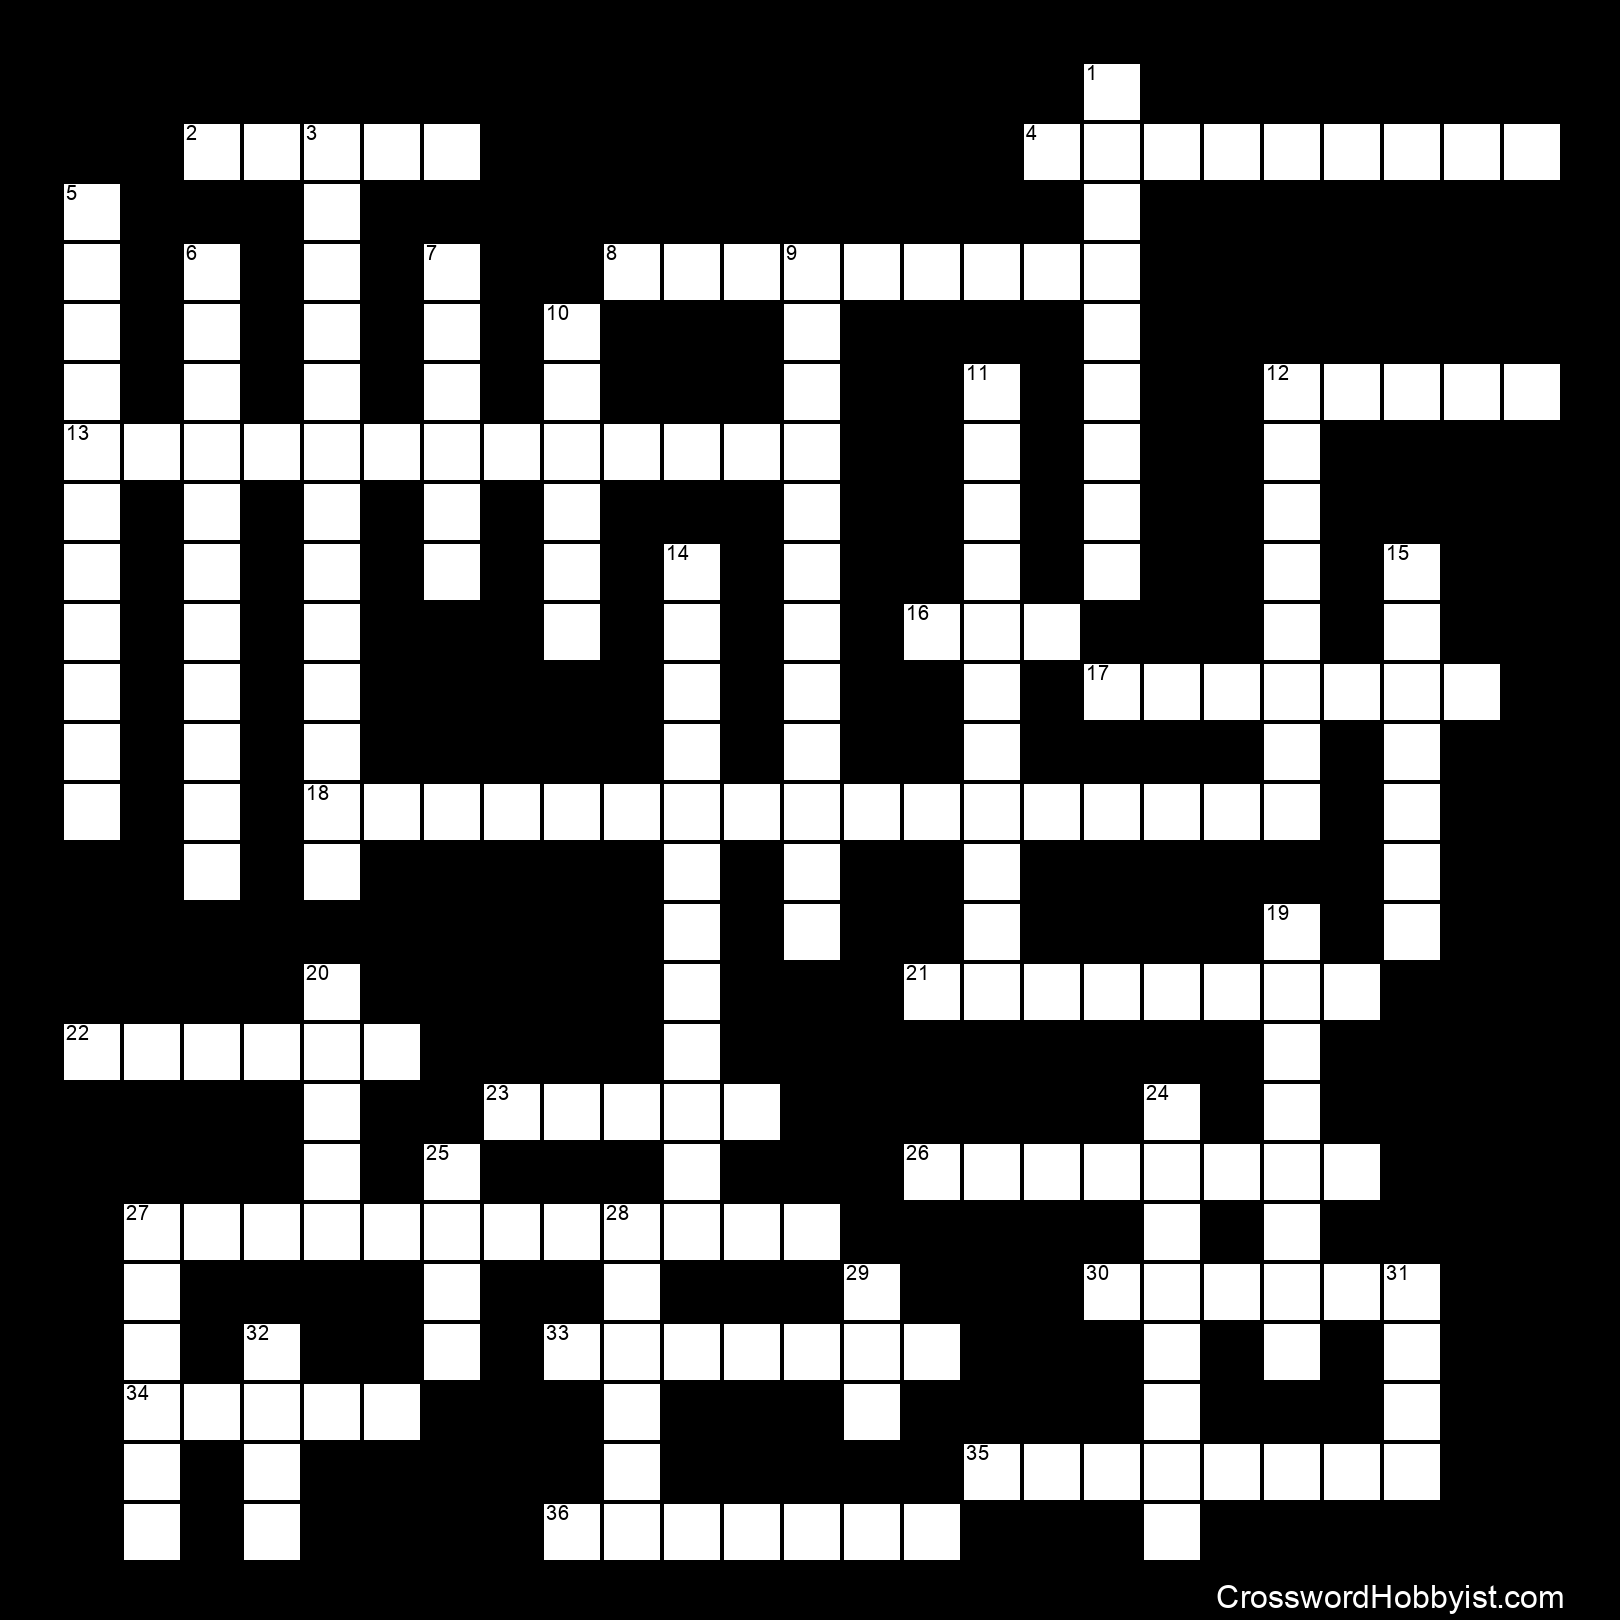 18th Century Review Crossword Puzzle